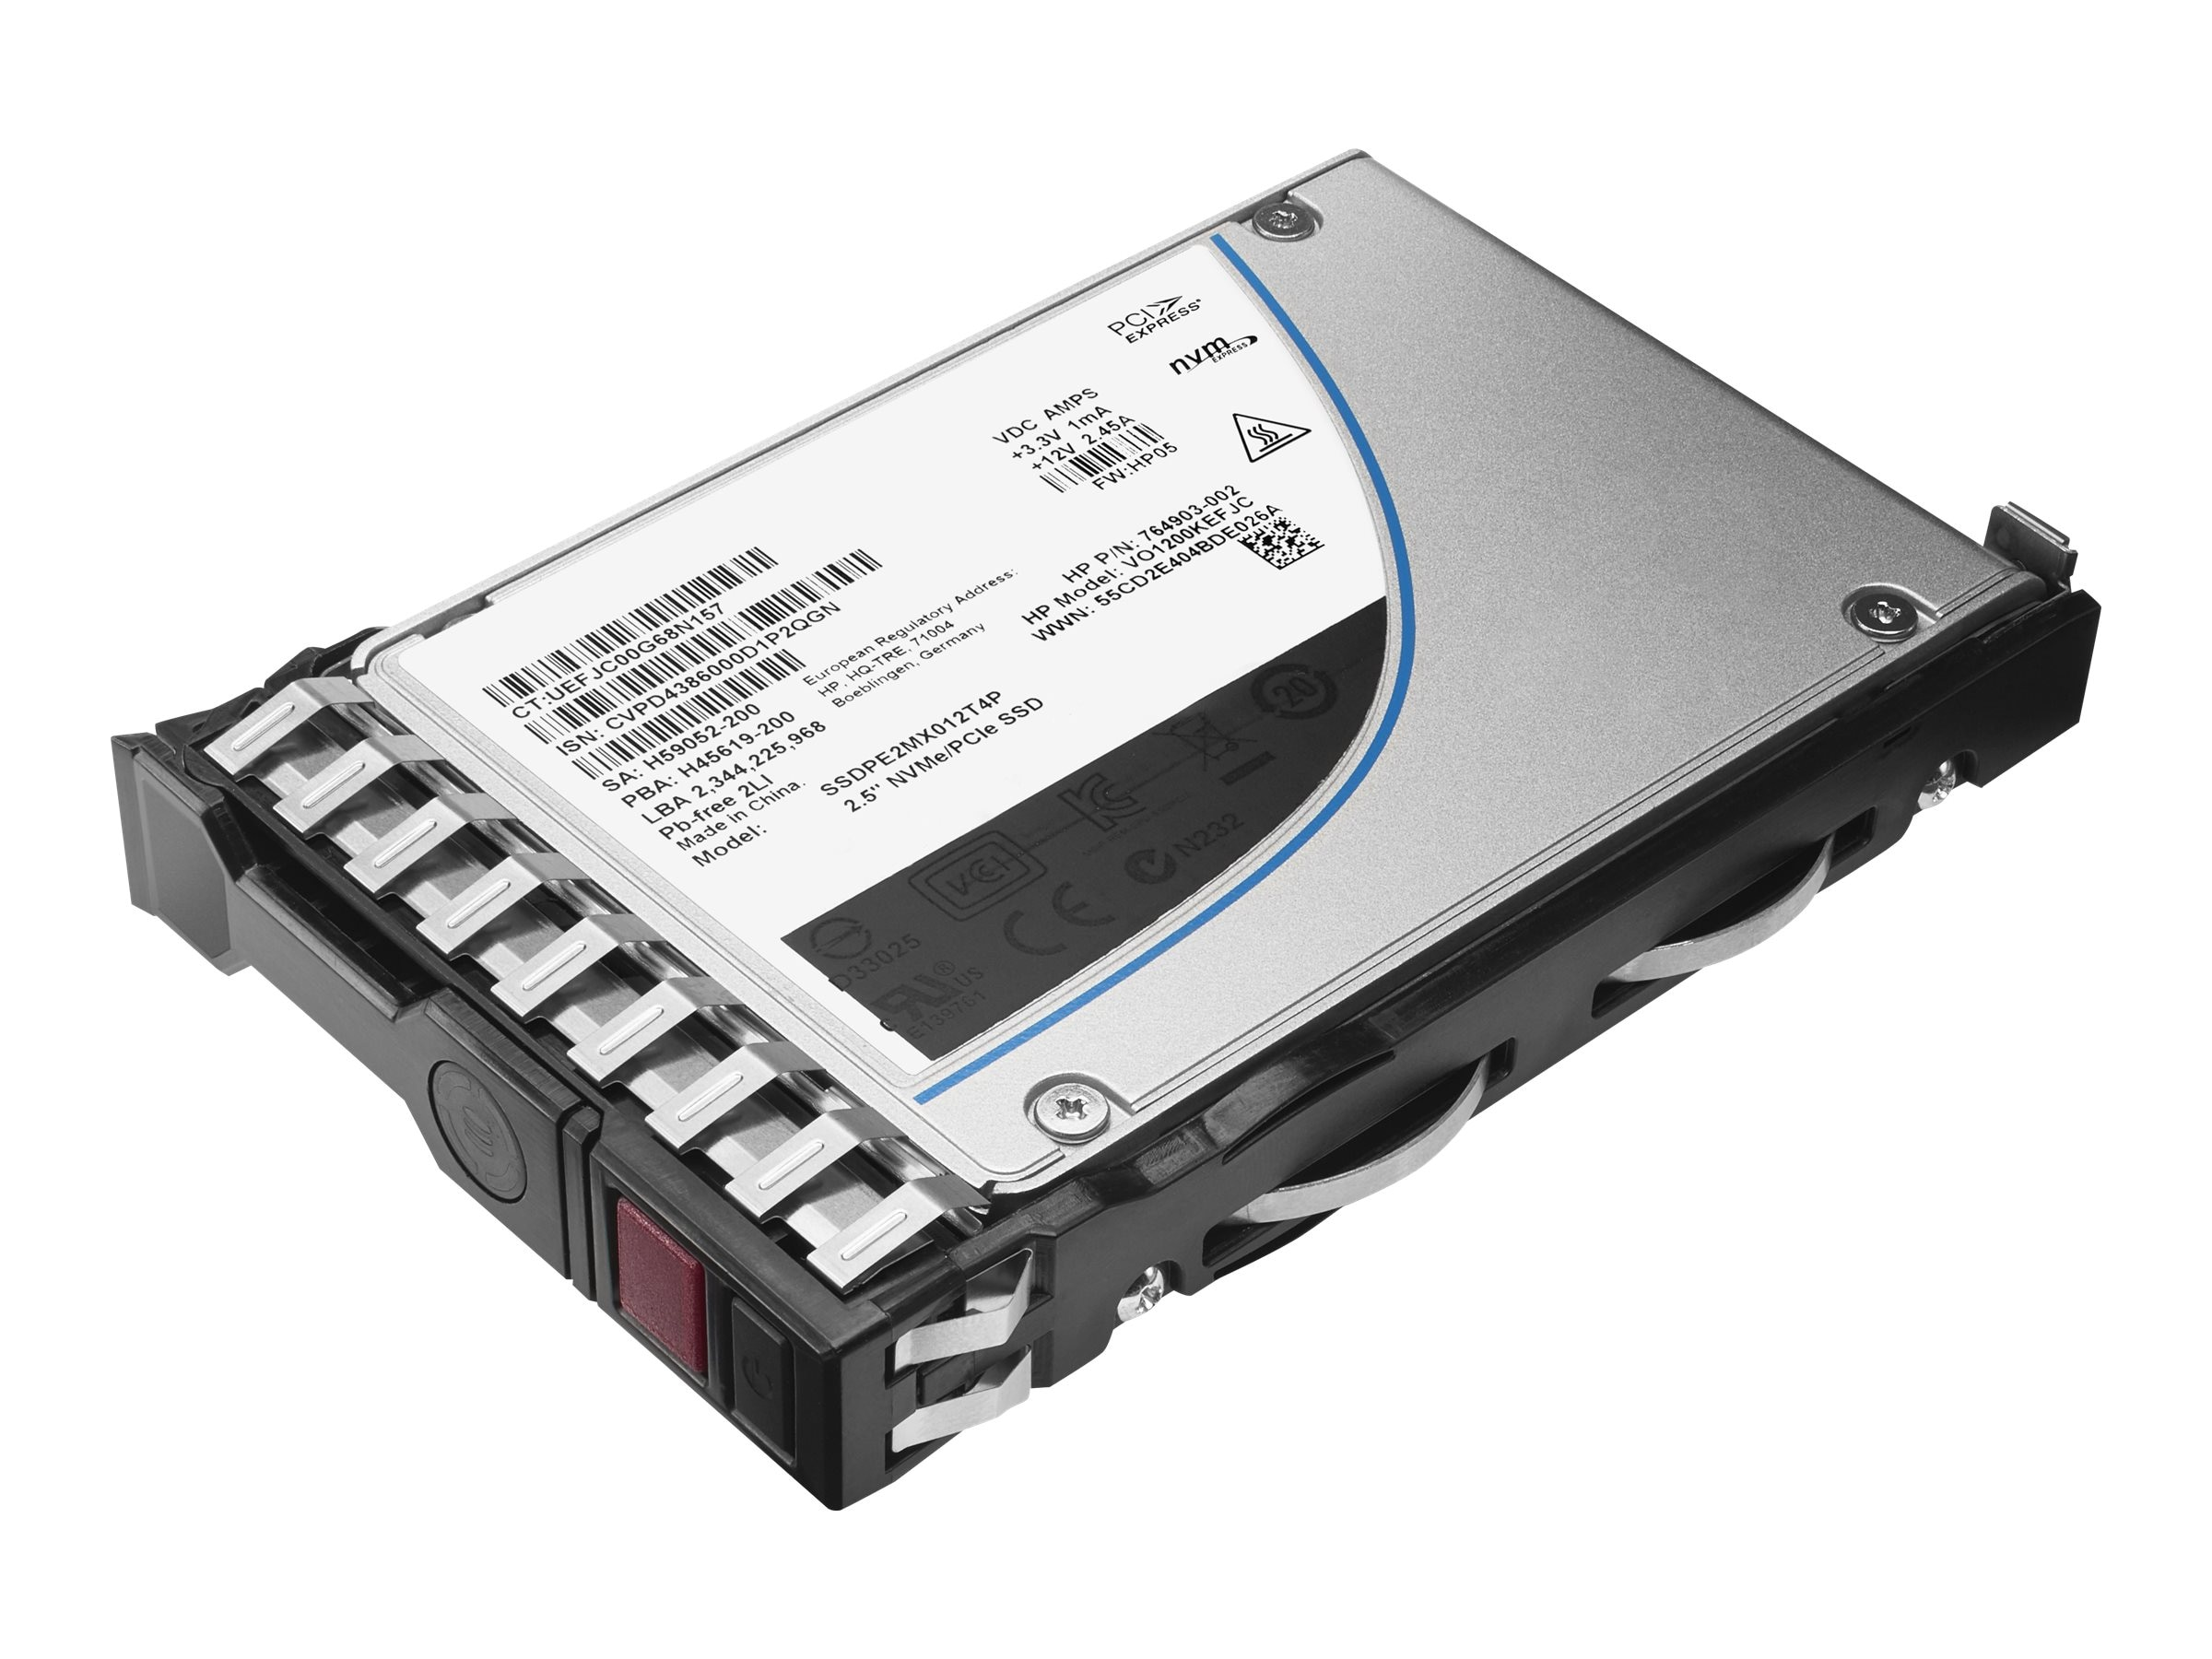 HPE 800GB SAS 12Gb s Value Endurance 3.5 LPC Enterprise Performance Solid State Drive